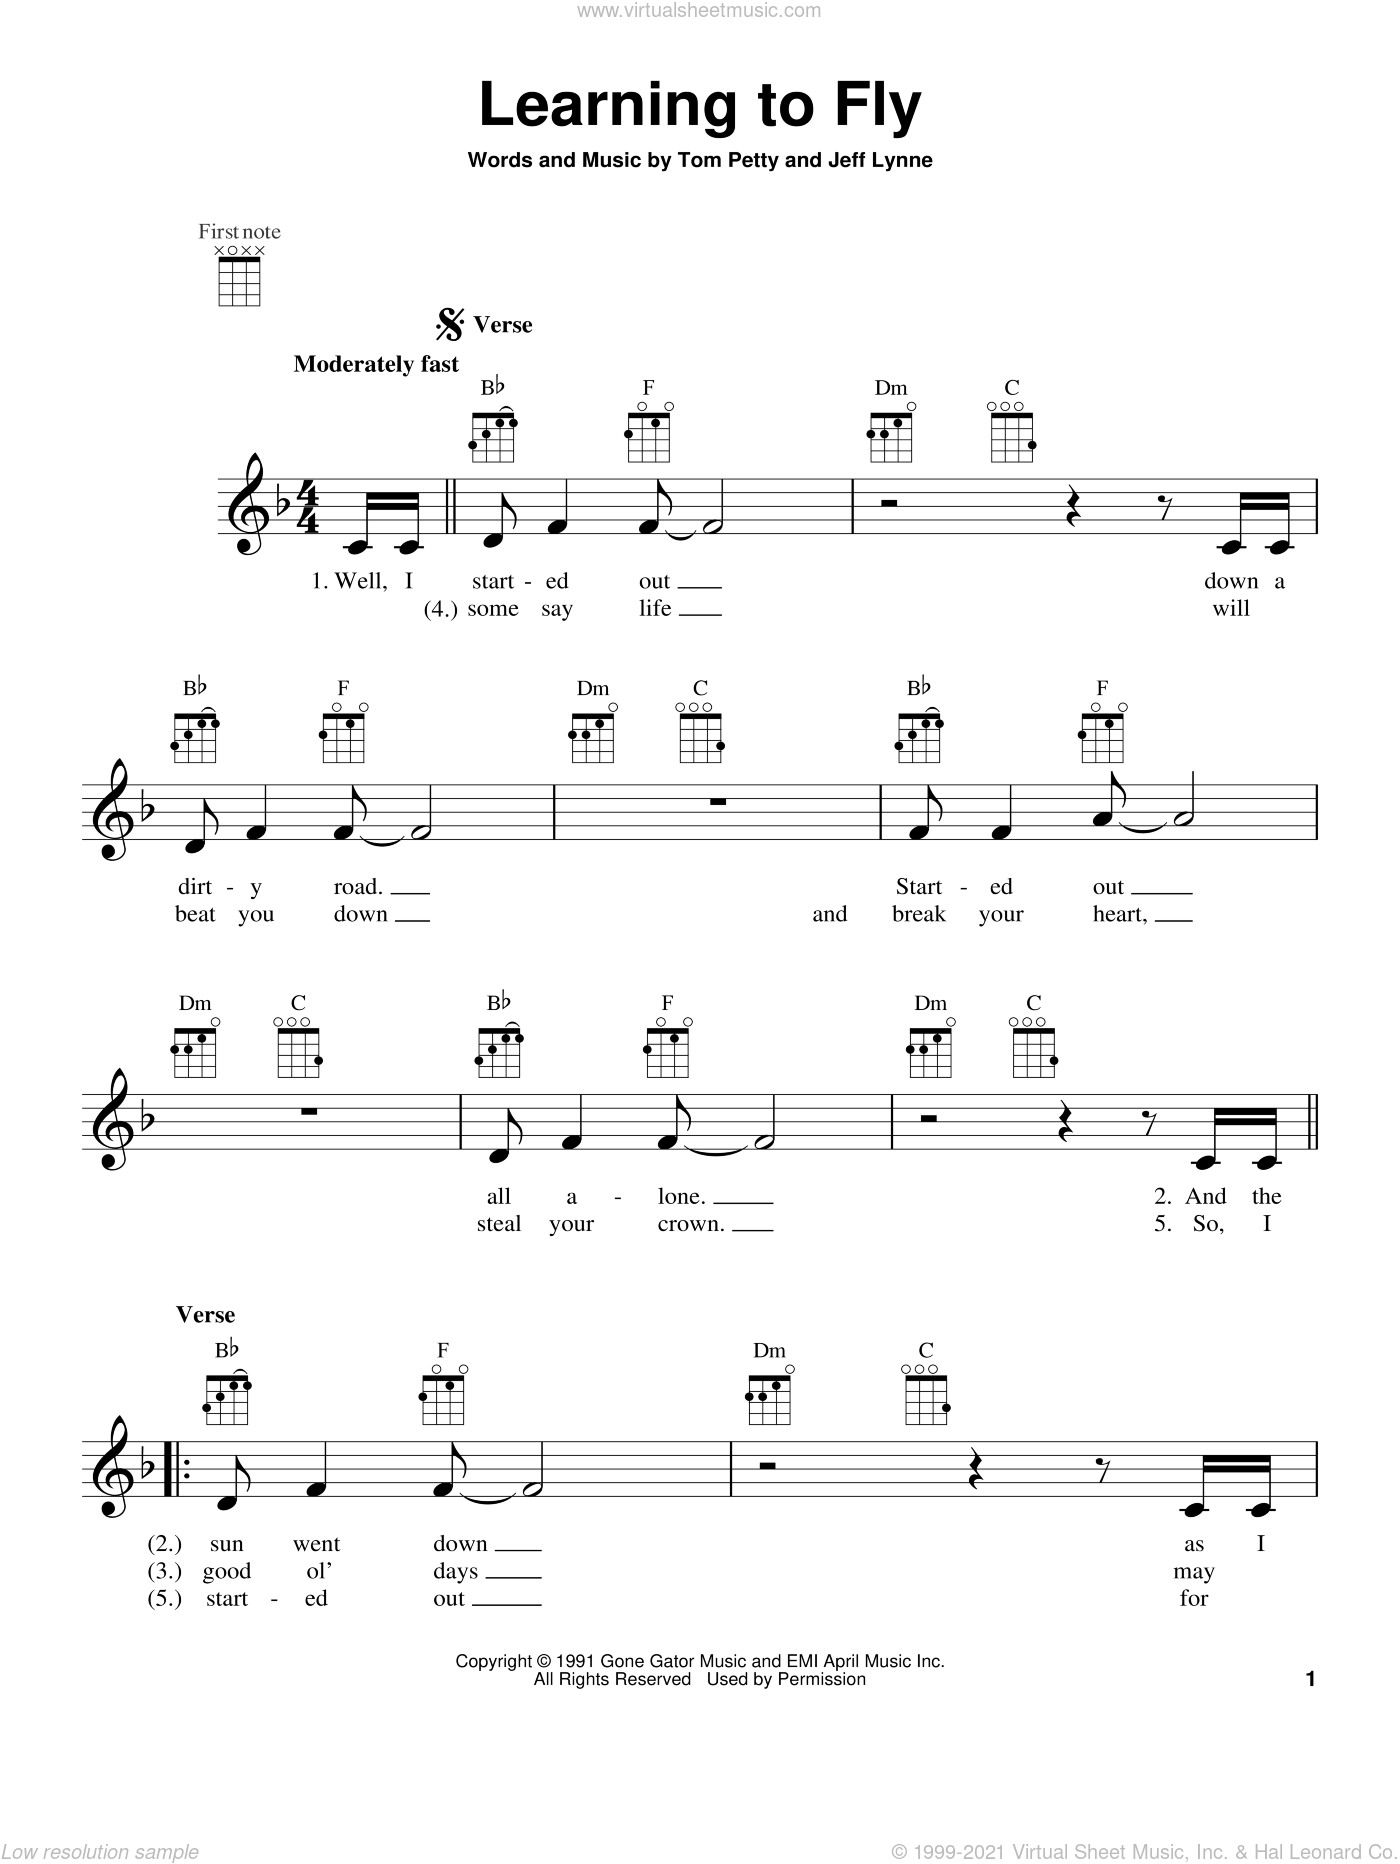 Learning To Fly sheet music for ukulele by Tom Petty. Score Image Preview.